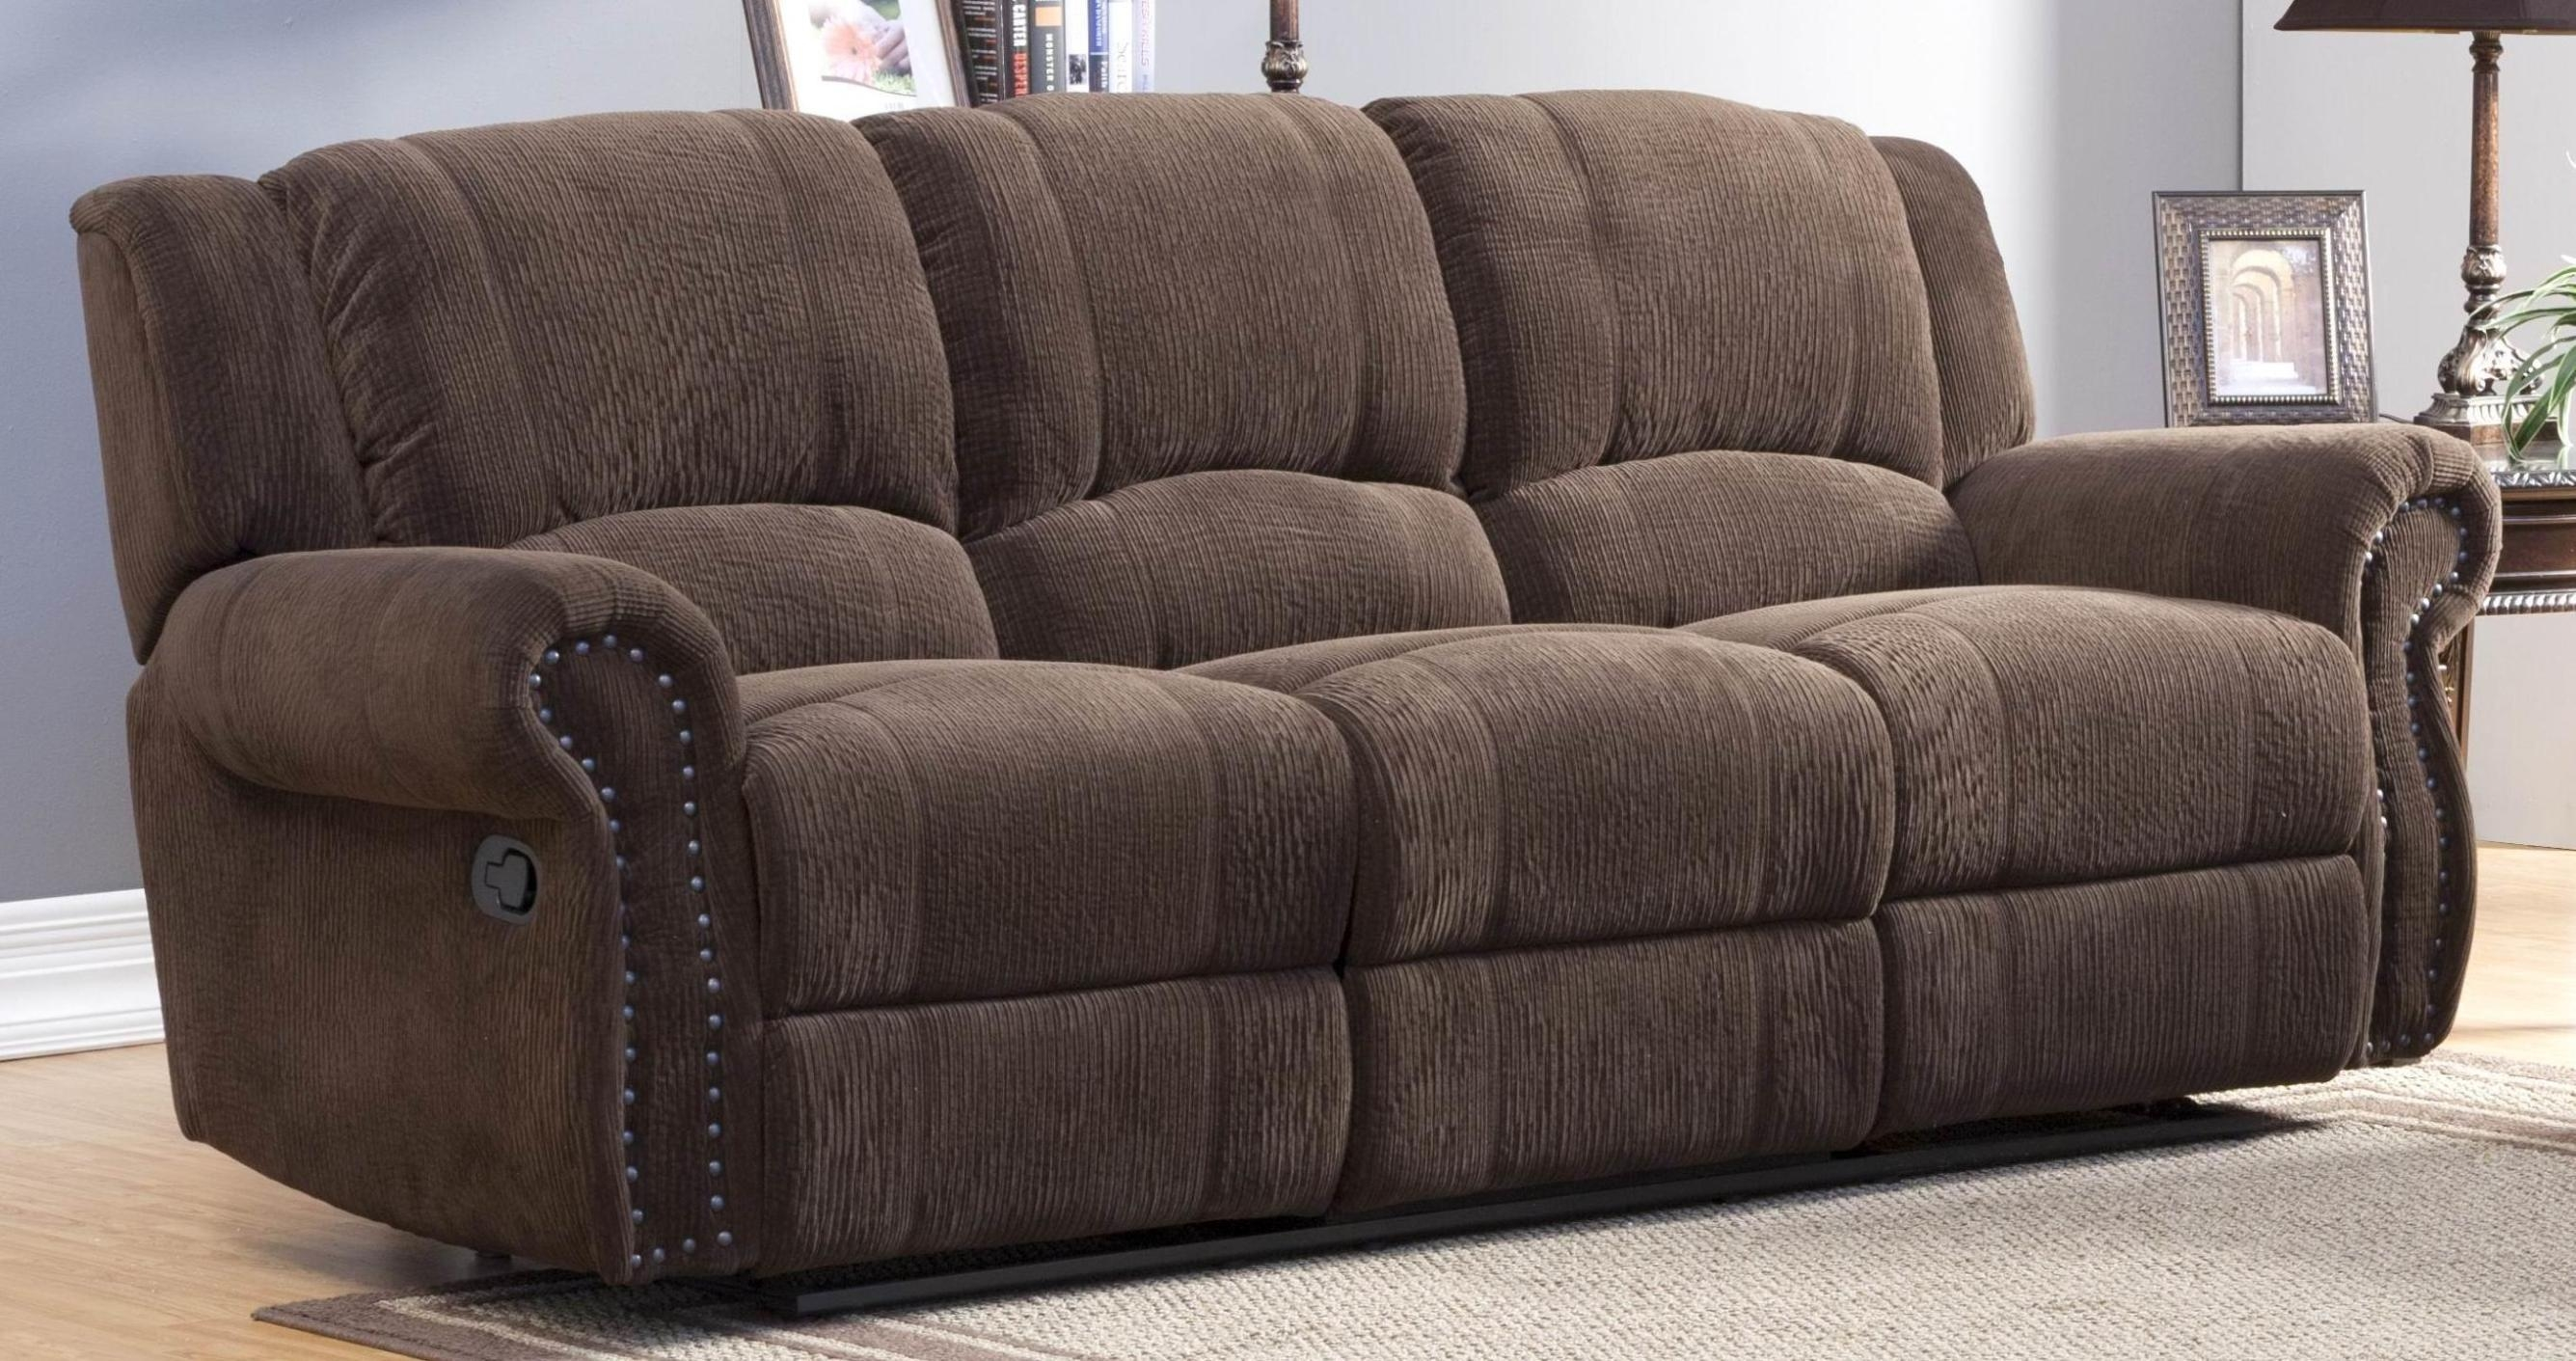 Reclining Sofa Covers | Tehranmix Decoration For Slipcover For Reclining Sofas (Image 13 of 20)